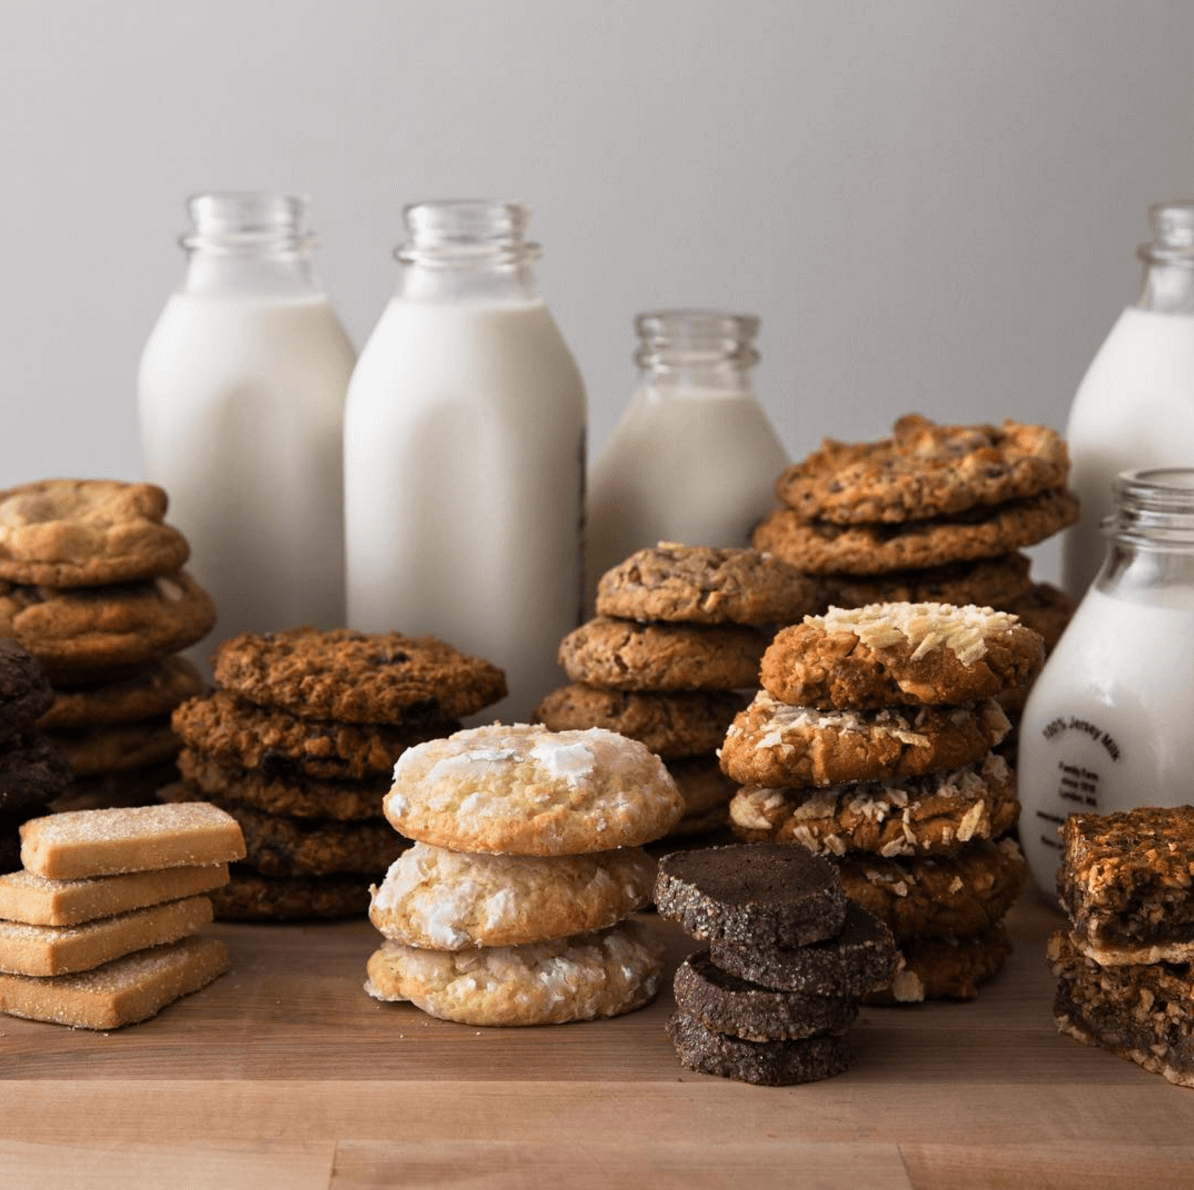 Shop Specialties Munchery Home Food Delivery Cookies